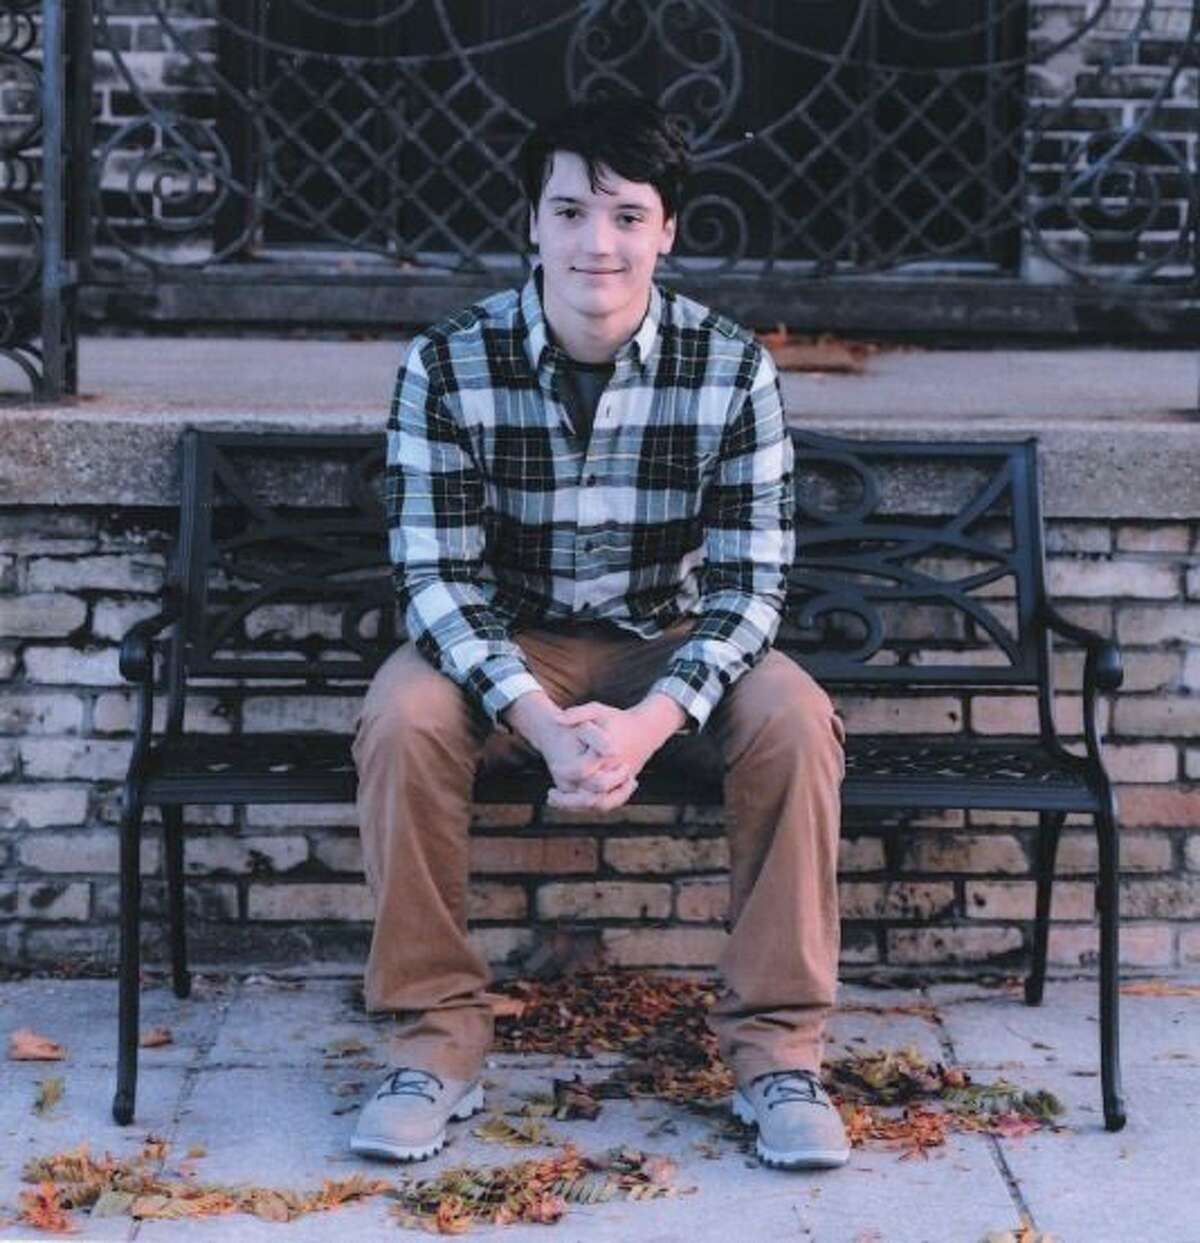 Keelan Eskridge, a graduate of Manistee High School, received one of the 33 scholarships totaling more than $100,000 awarded by the Manistee County Community Foundation for the upcoming 2021-2022 academic year. The Minger Family Endowment Fund scholarship is renewable up to three times, providing critical support to help students persist in college and achieve their postsecondary education goals. (Courtesy photo)